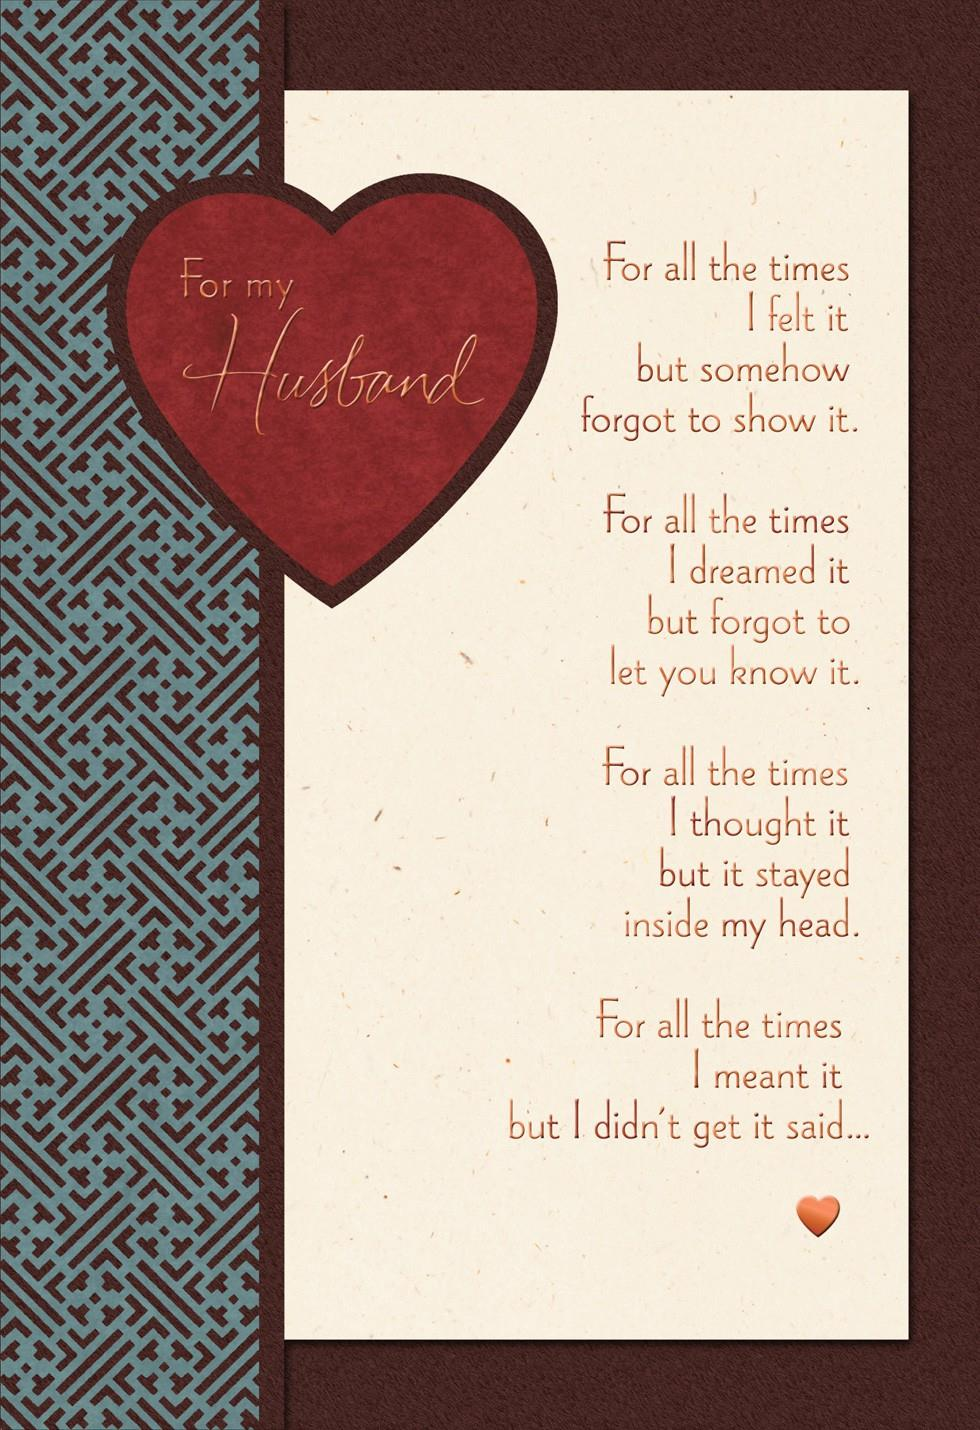 It's just a photo of Tactueux Printable Valentines Day Cards for Husband